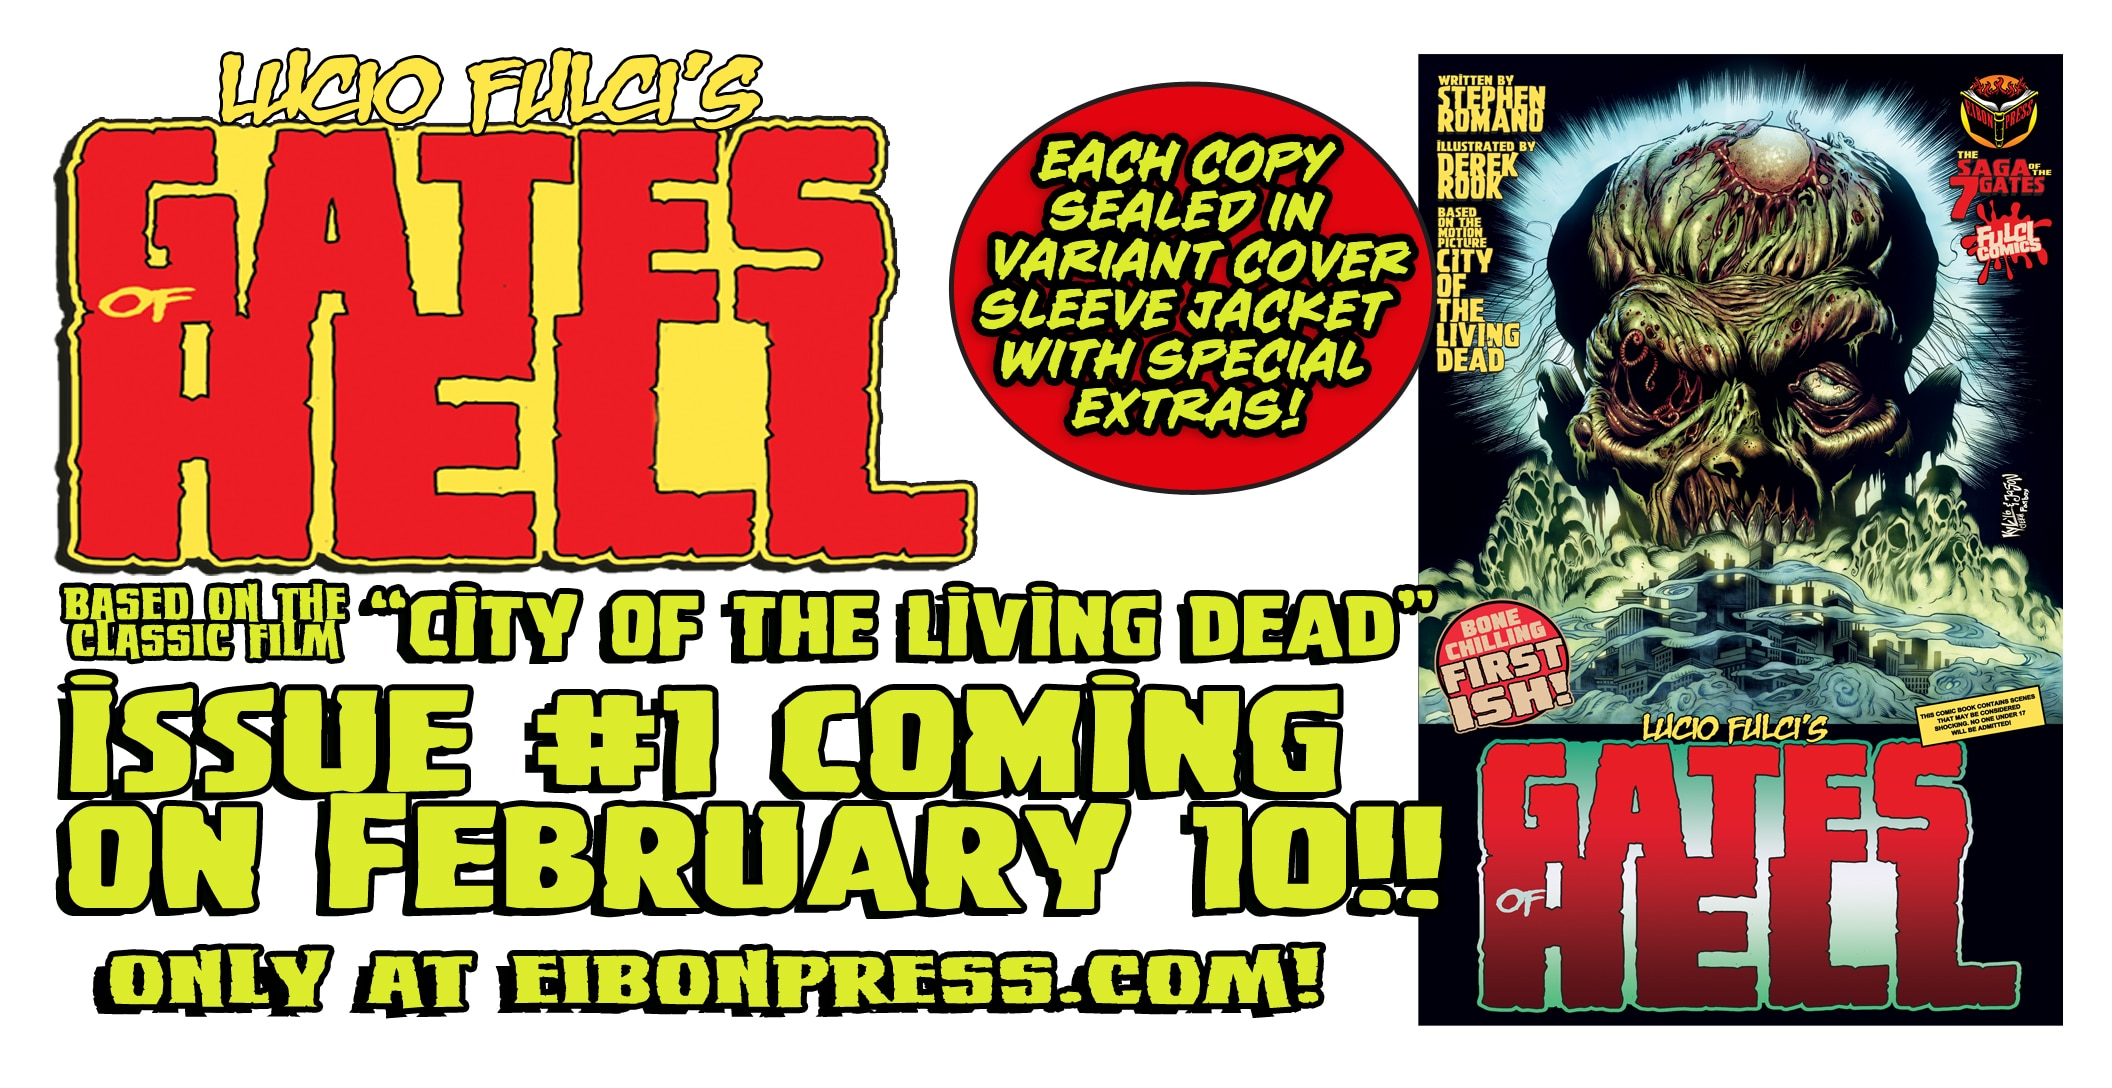 GATES MINI AD - Eibon Press Presents Lucio Fulci's Gates of Hell Trilogy in Comic Form on FEBRUARY 10!